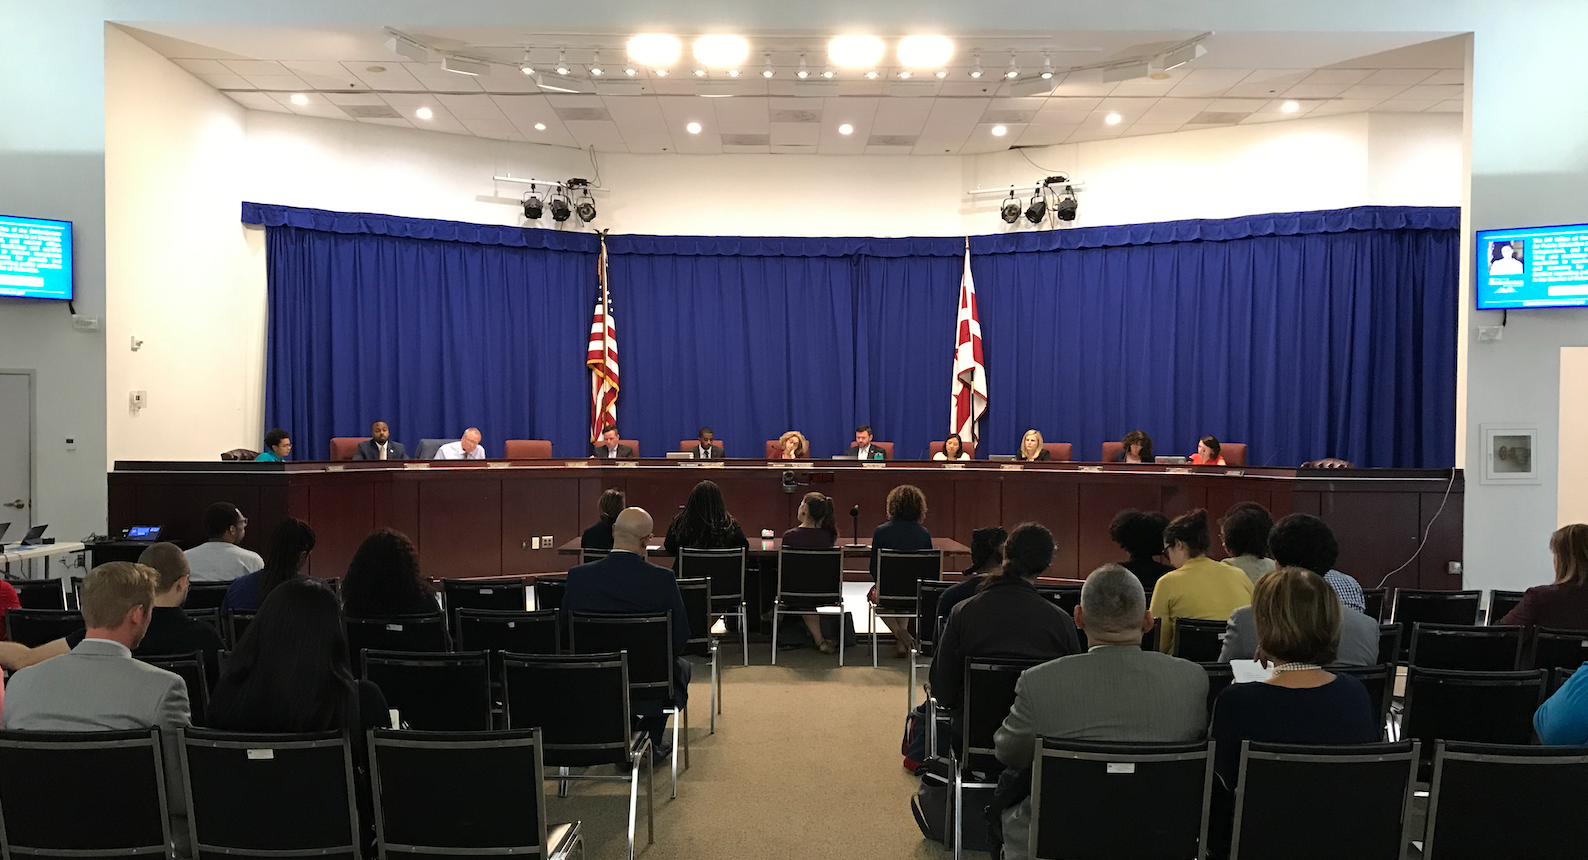 A picture of one of the State Board's monthly public meetings. The members of the state board are seated at the dais and members of the public are seated in rows.